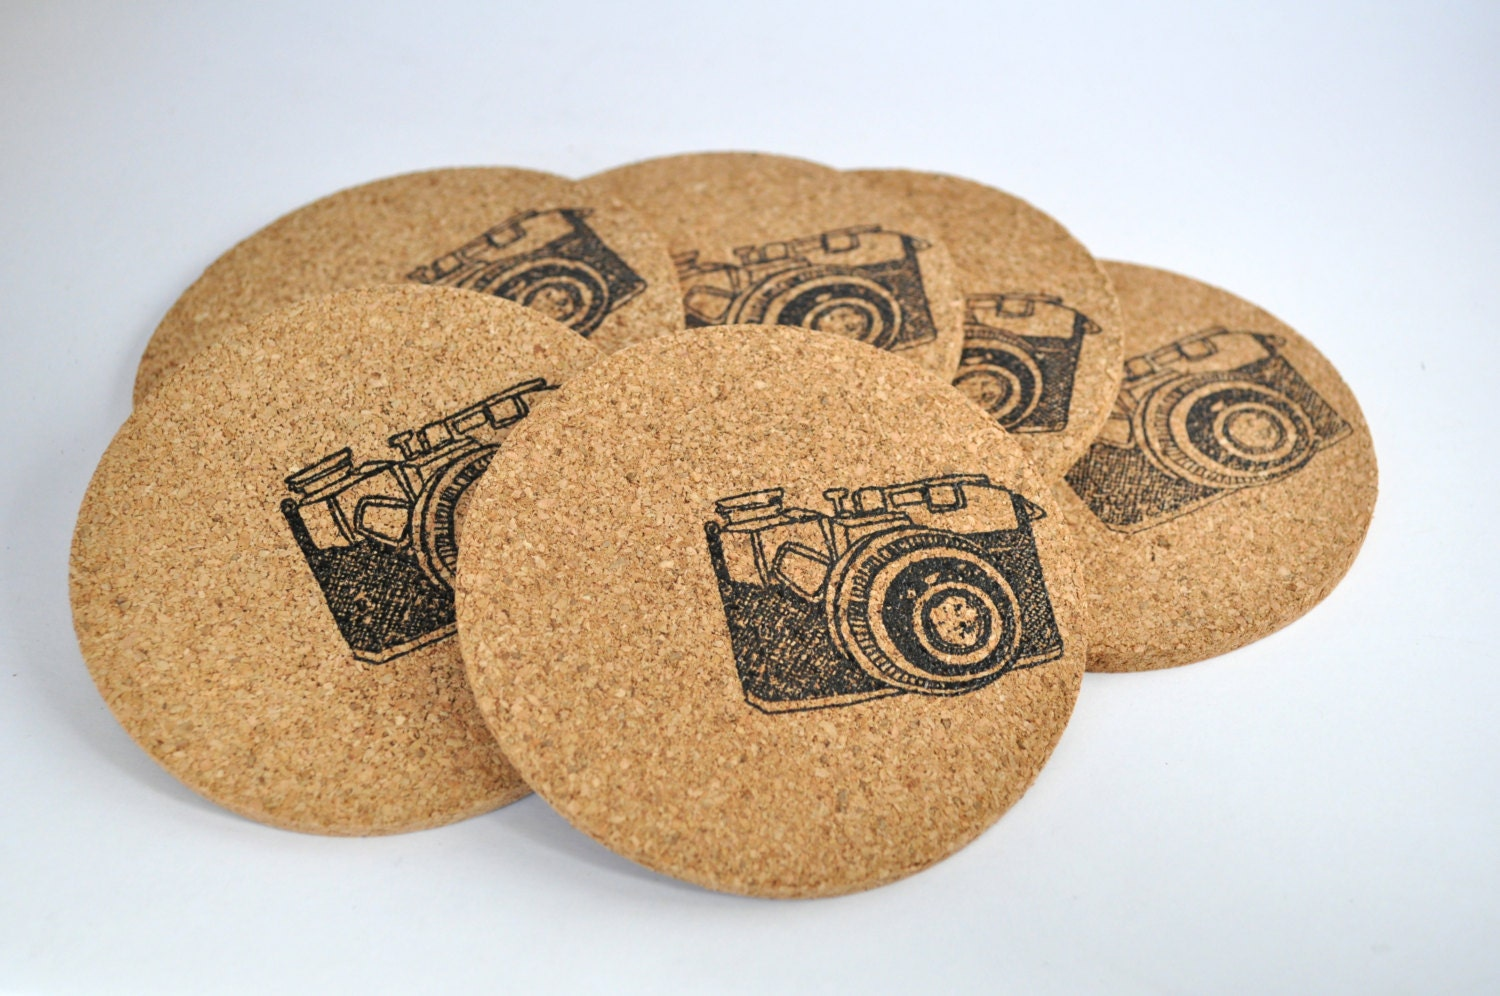 Vintage super funny paper round drink coasters nude risque adults only for sale online